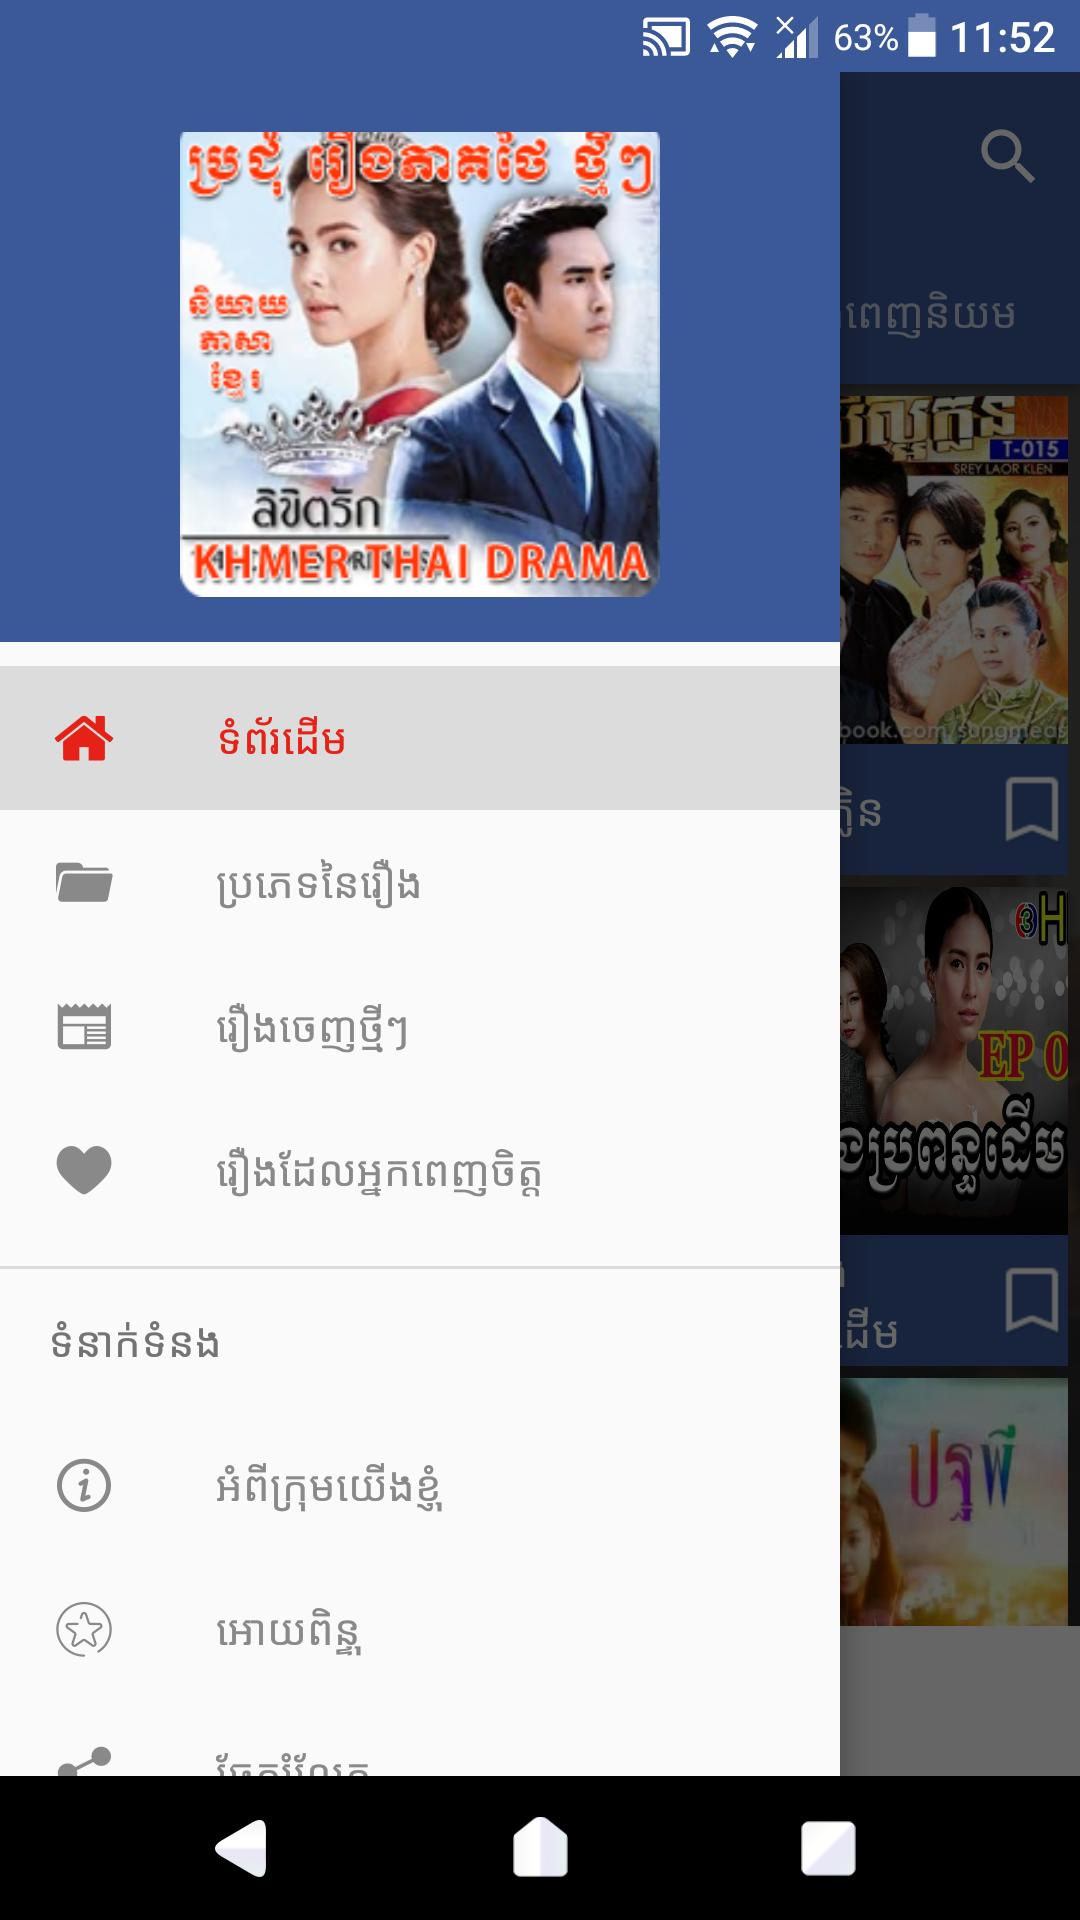 Khmer Thai Drama for Android - APK Download